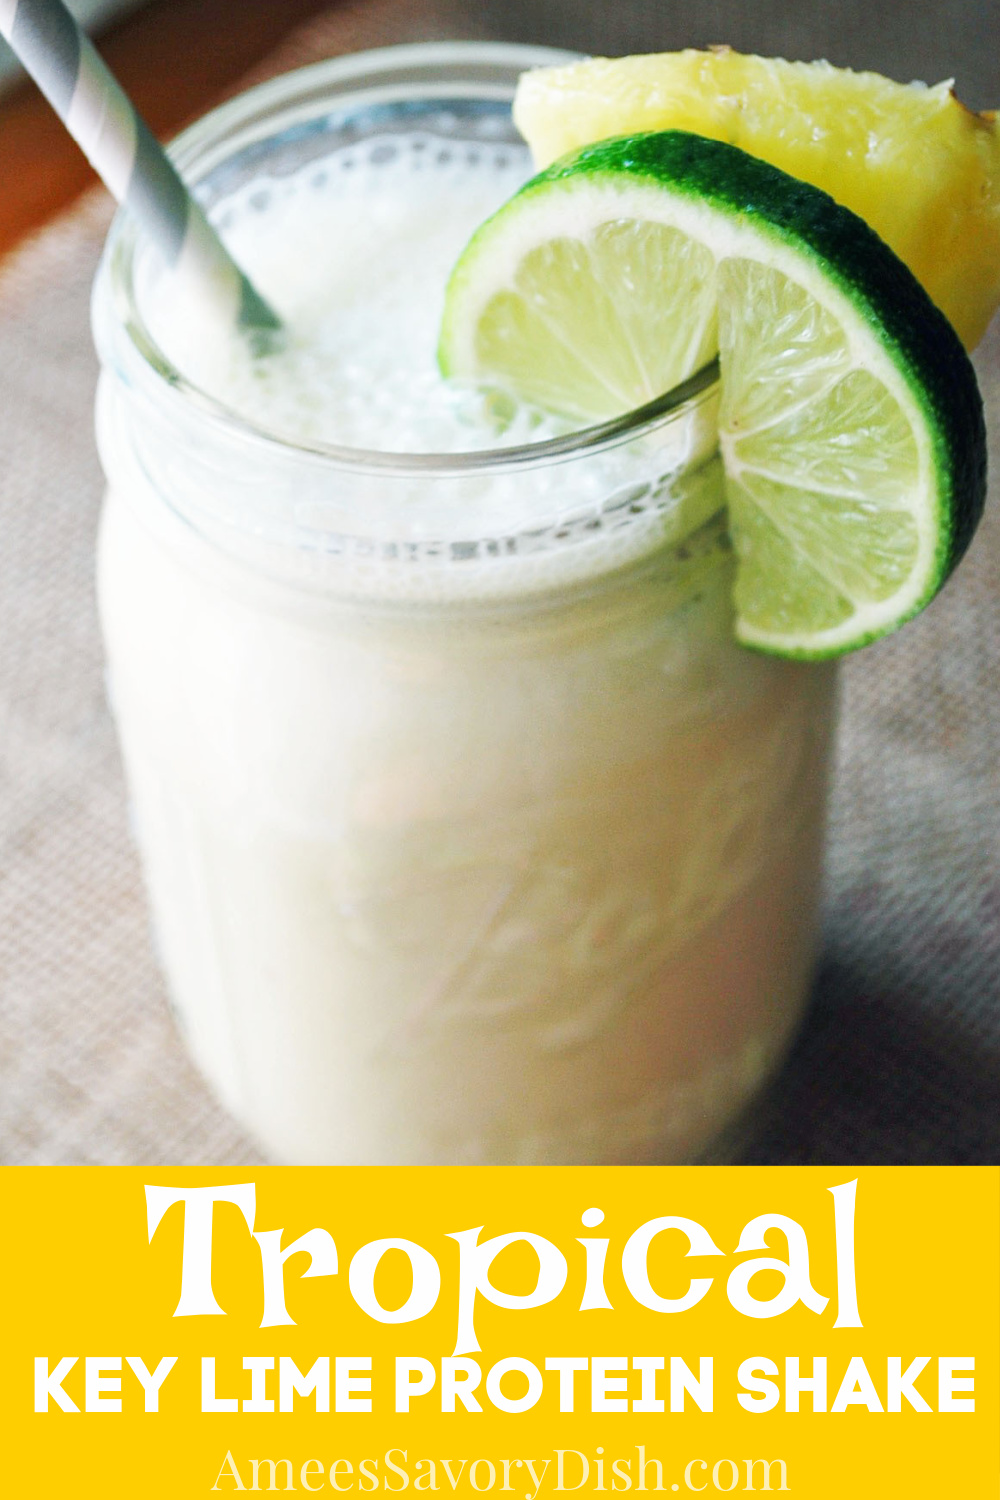 A delicious tropical key lime protein shake recipe made with unsweetened almond milk, key lime Greek yogurt, whey protein, and tropical fruits.#proteinshake #tropicalproteinshake #proteinshakerecipe via @Ameessavorydish